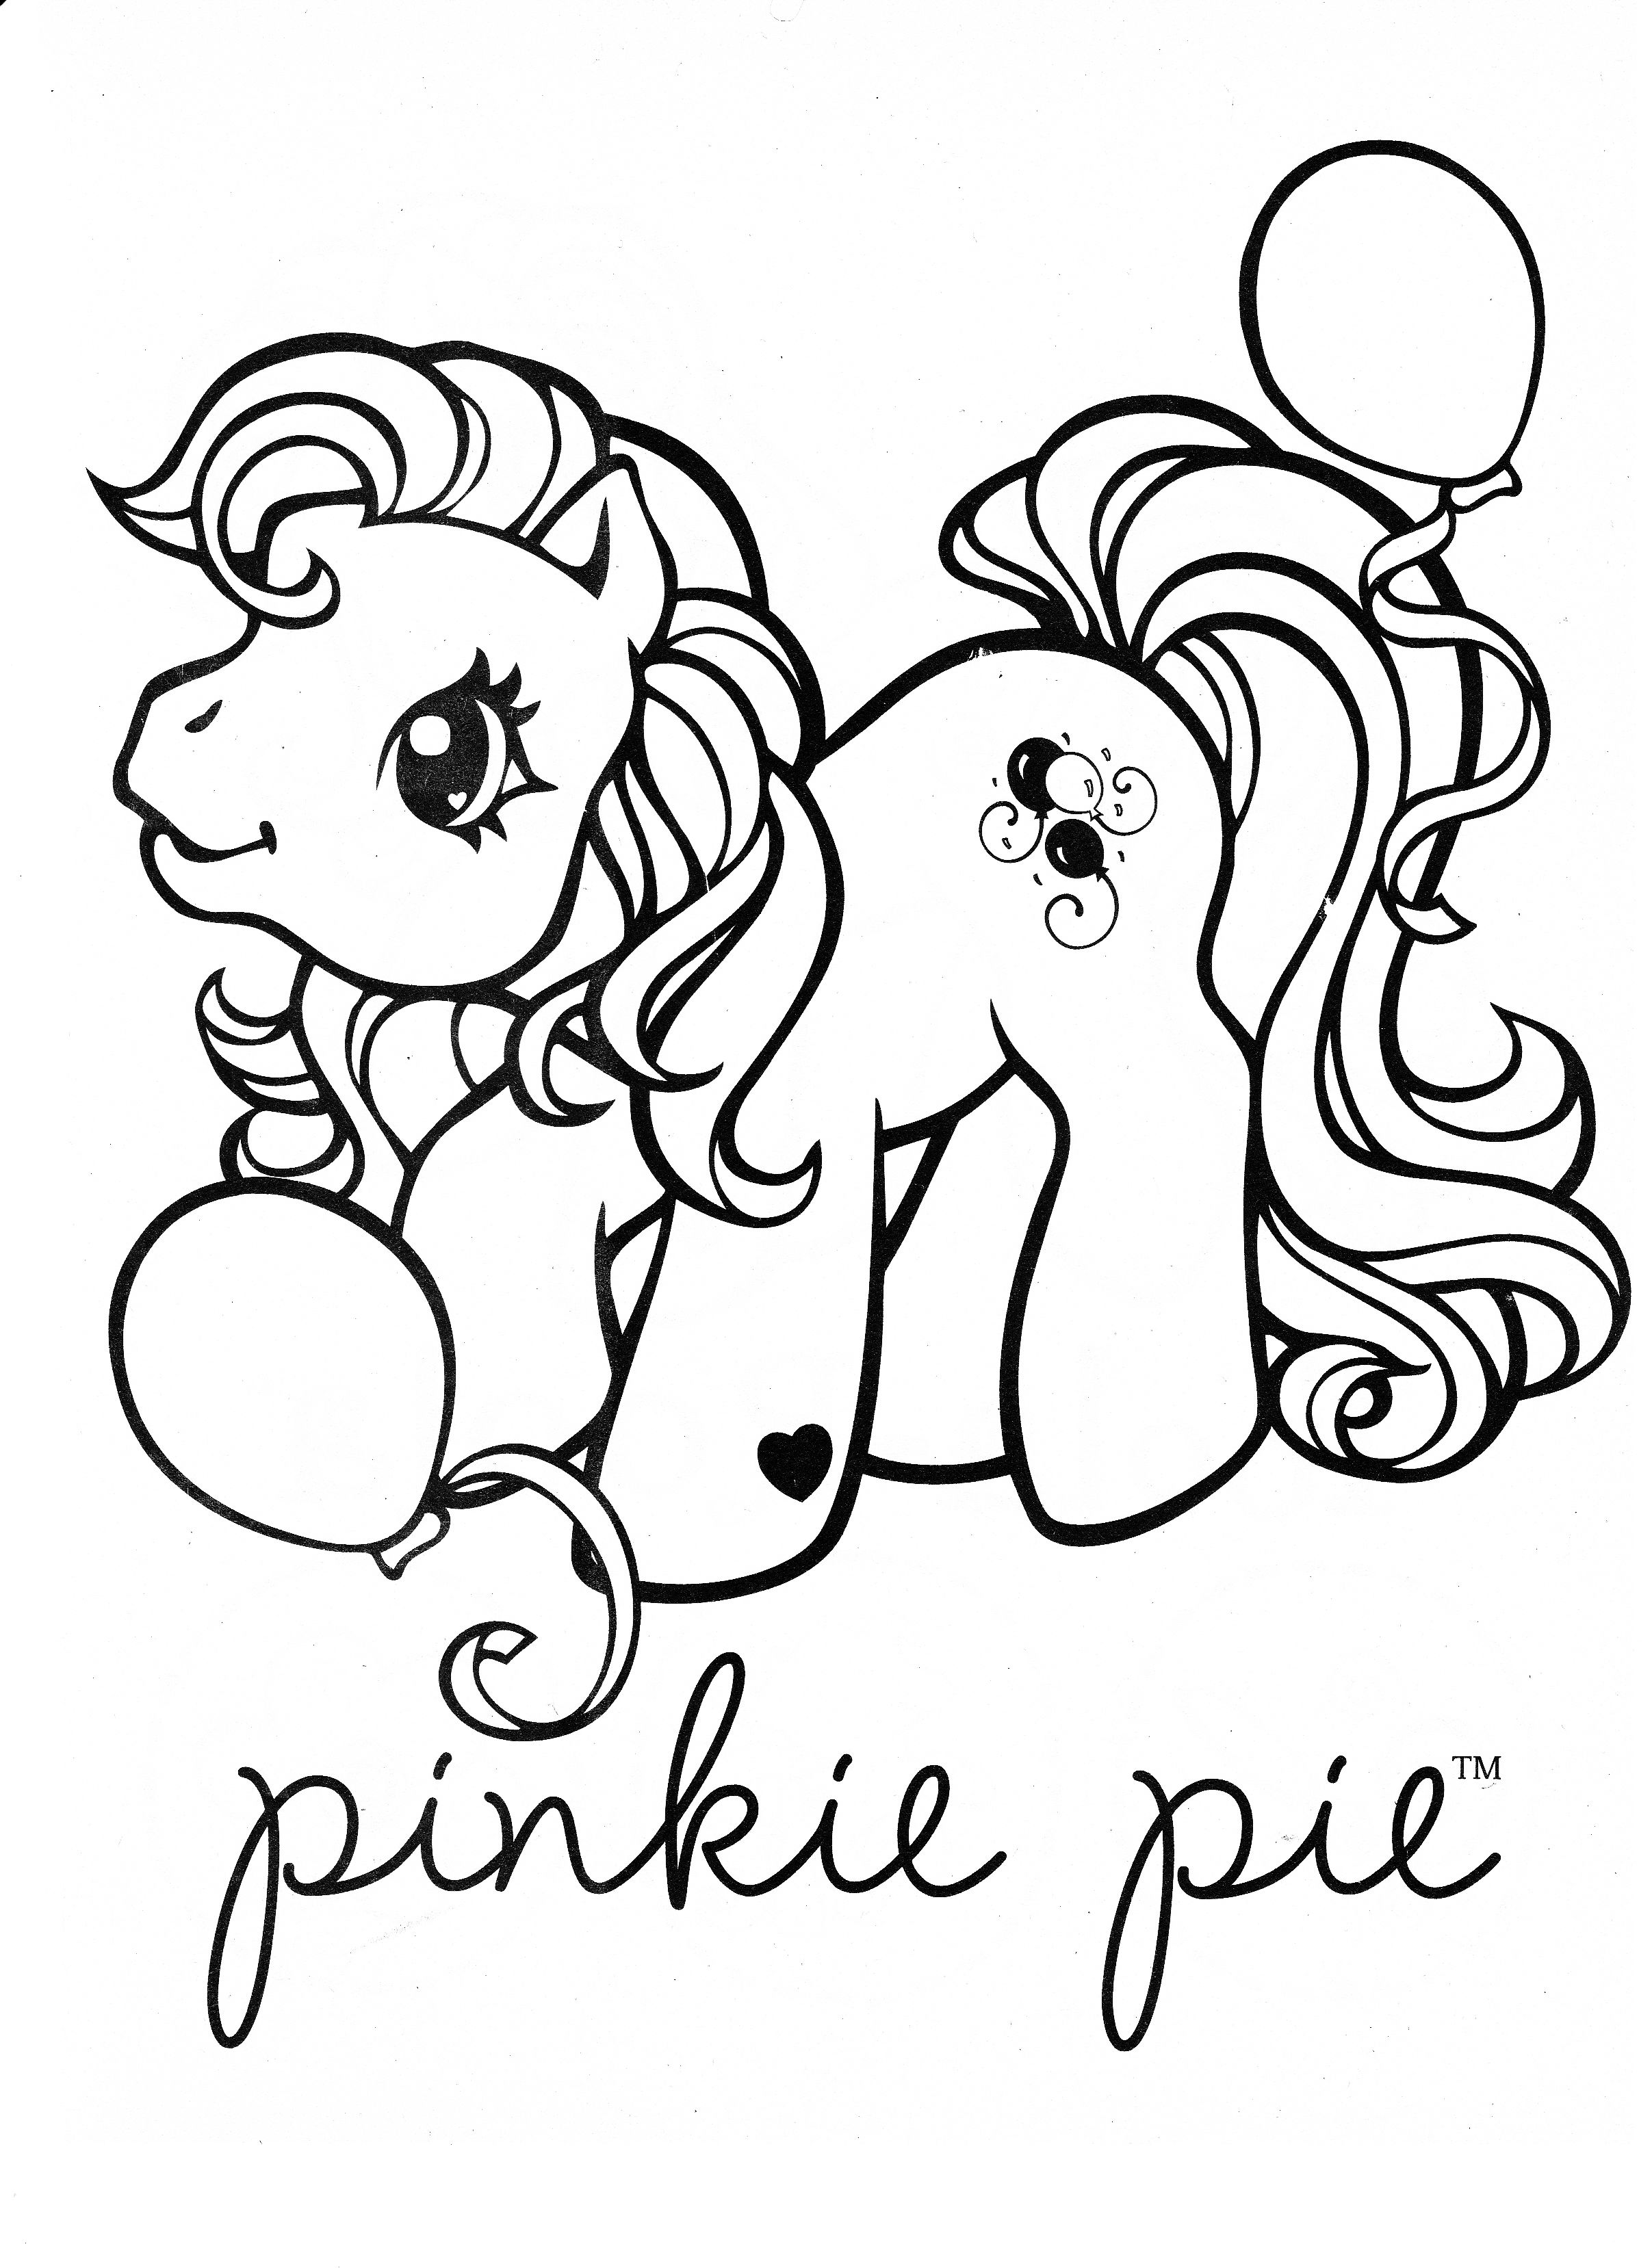 coloring pinkie pie my little pony coloring page mlp pinkie pie coloring pinkie pie coloring